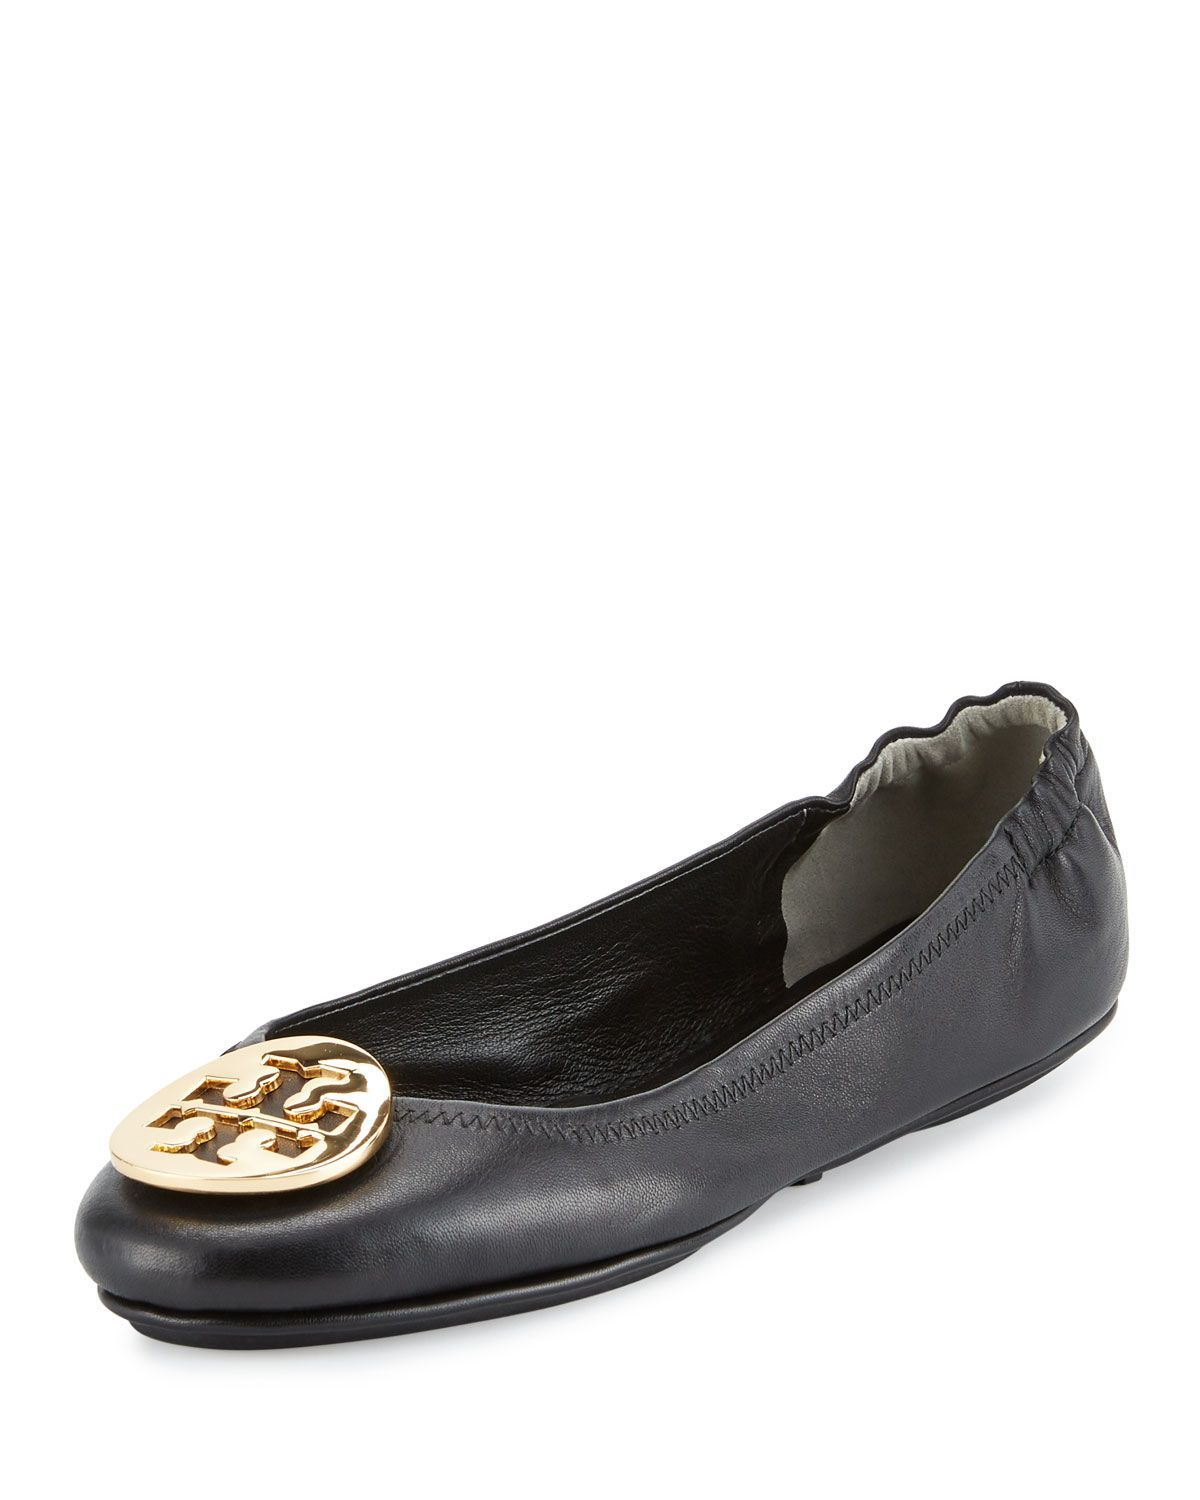 a966d612e78d5d Tory Burch Minnie Travel Logo Ballerina Flat